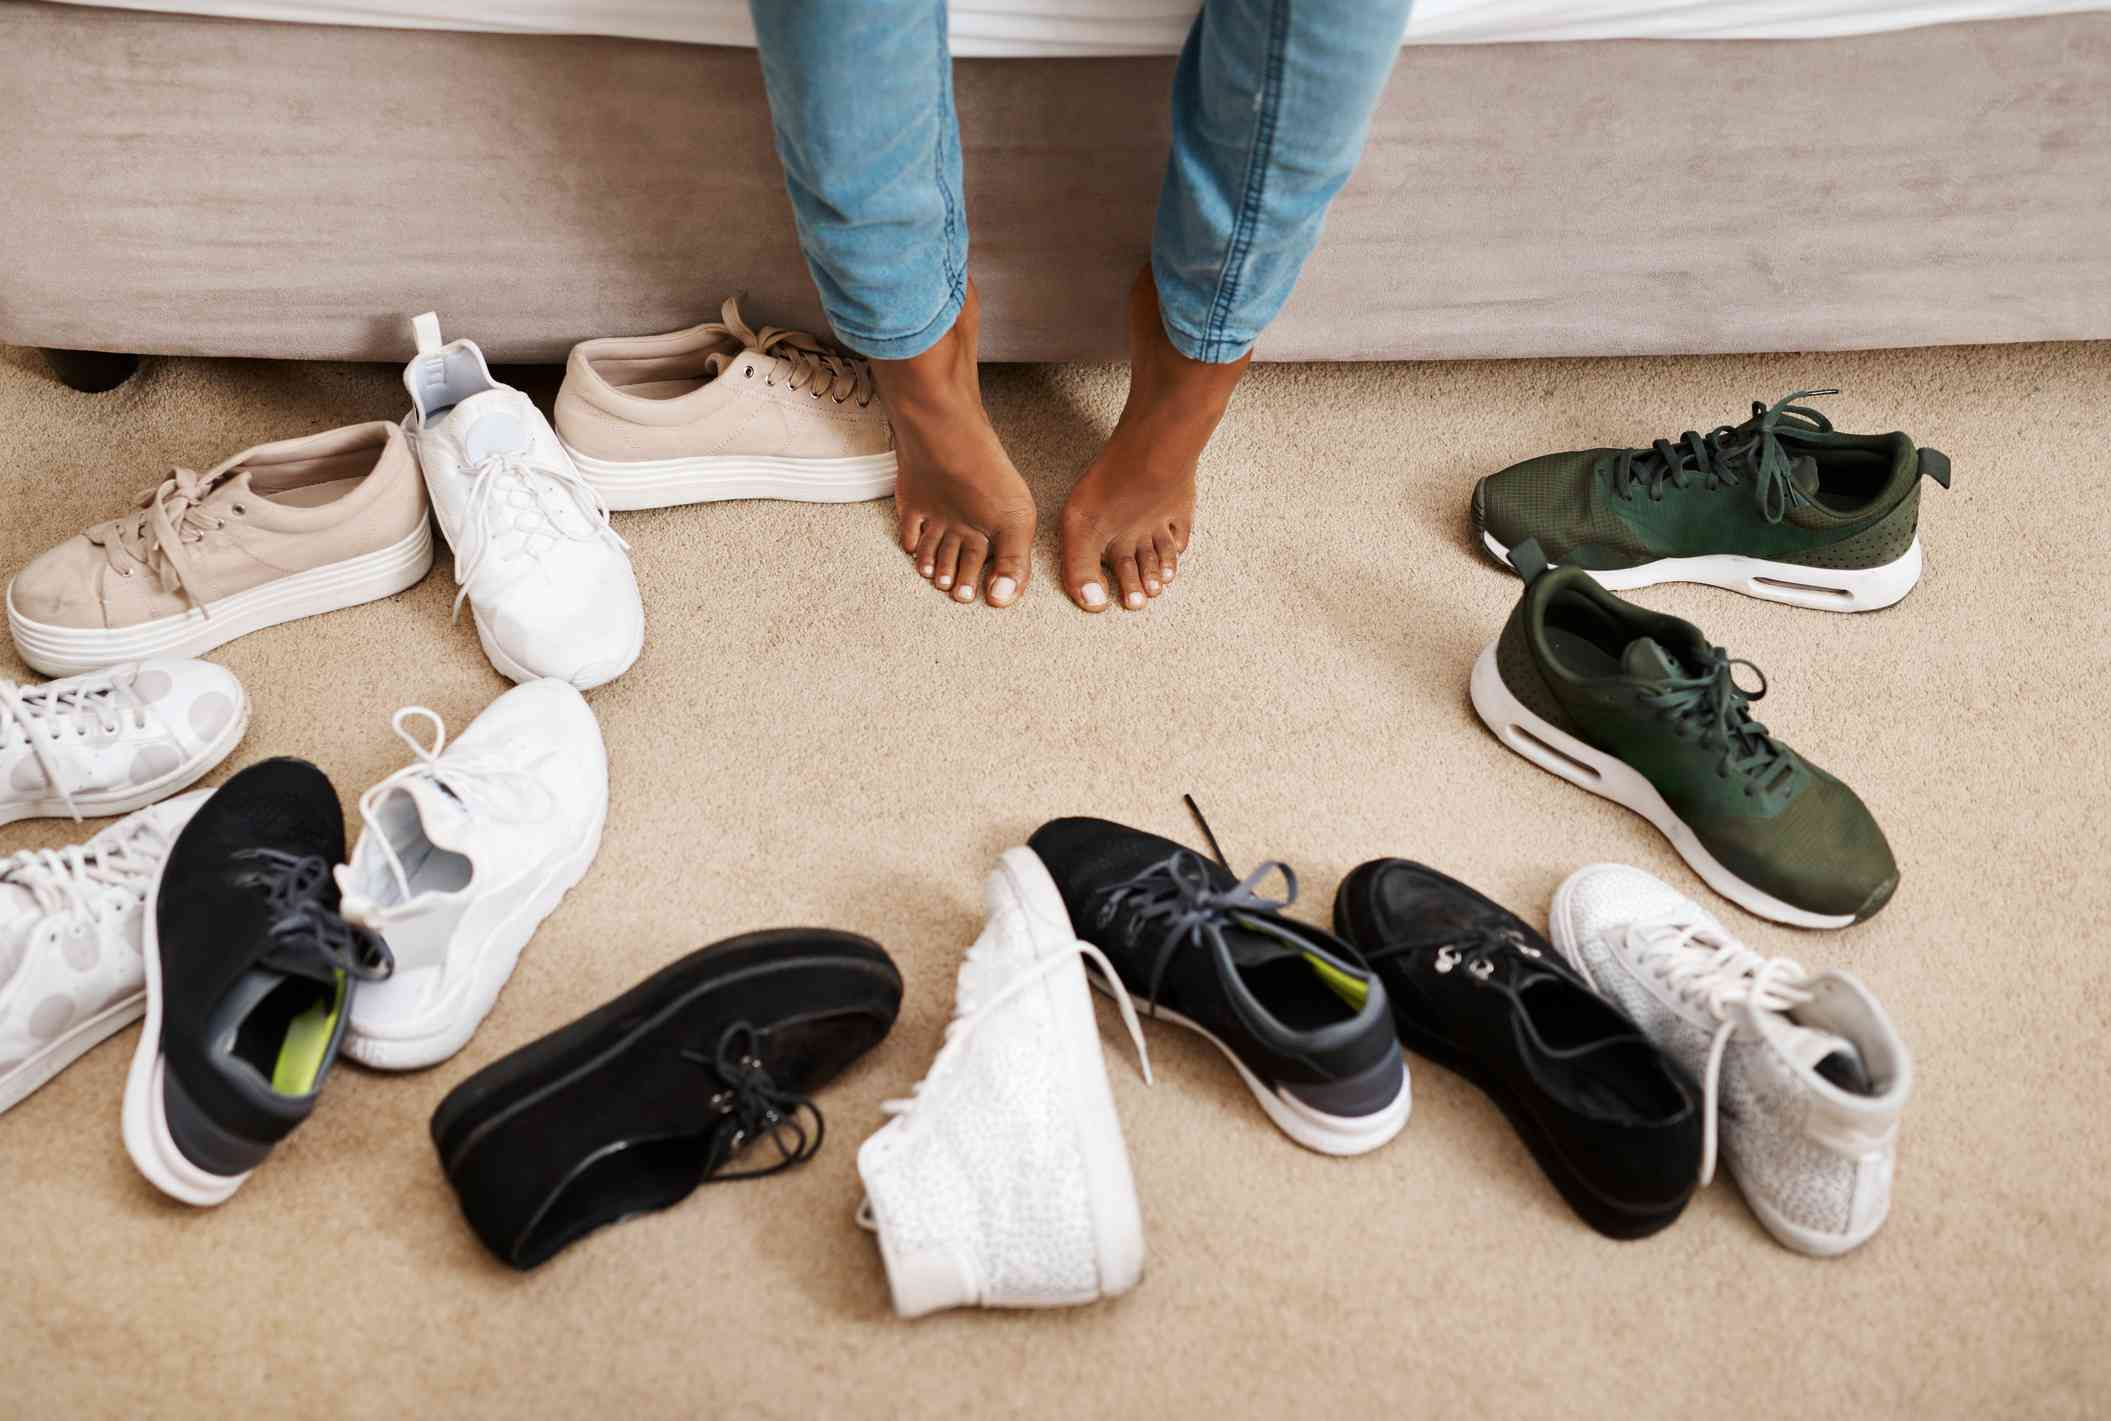 Close up shot of woman's feet surrounded by several pairs of sneakers